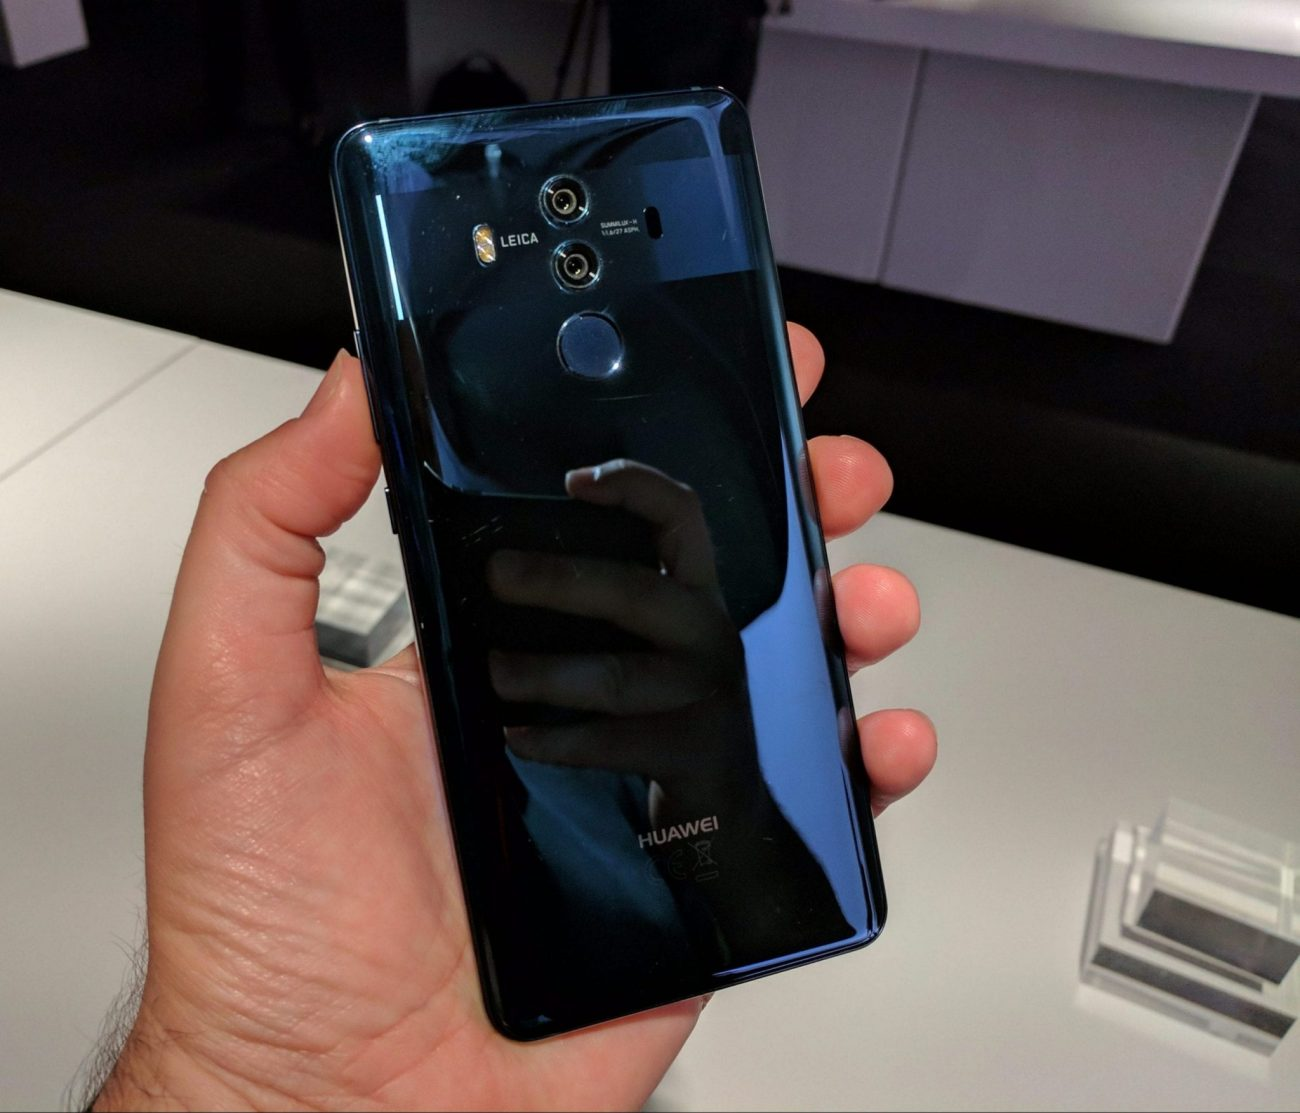 Huawei Mate 10 Pro Rear Blue In Hand